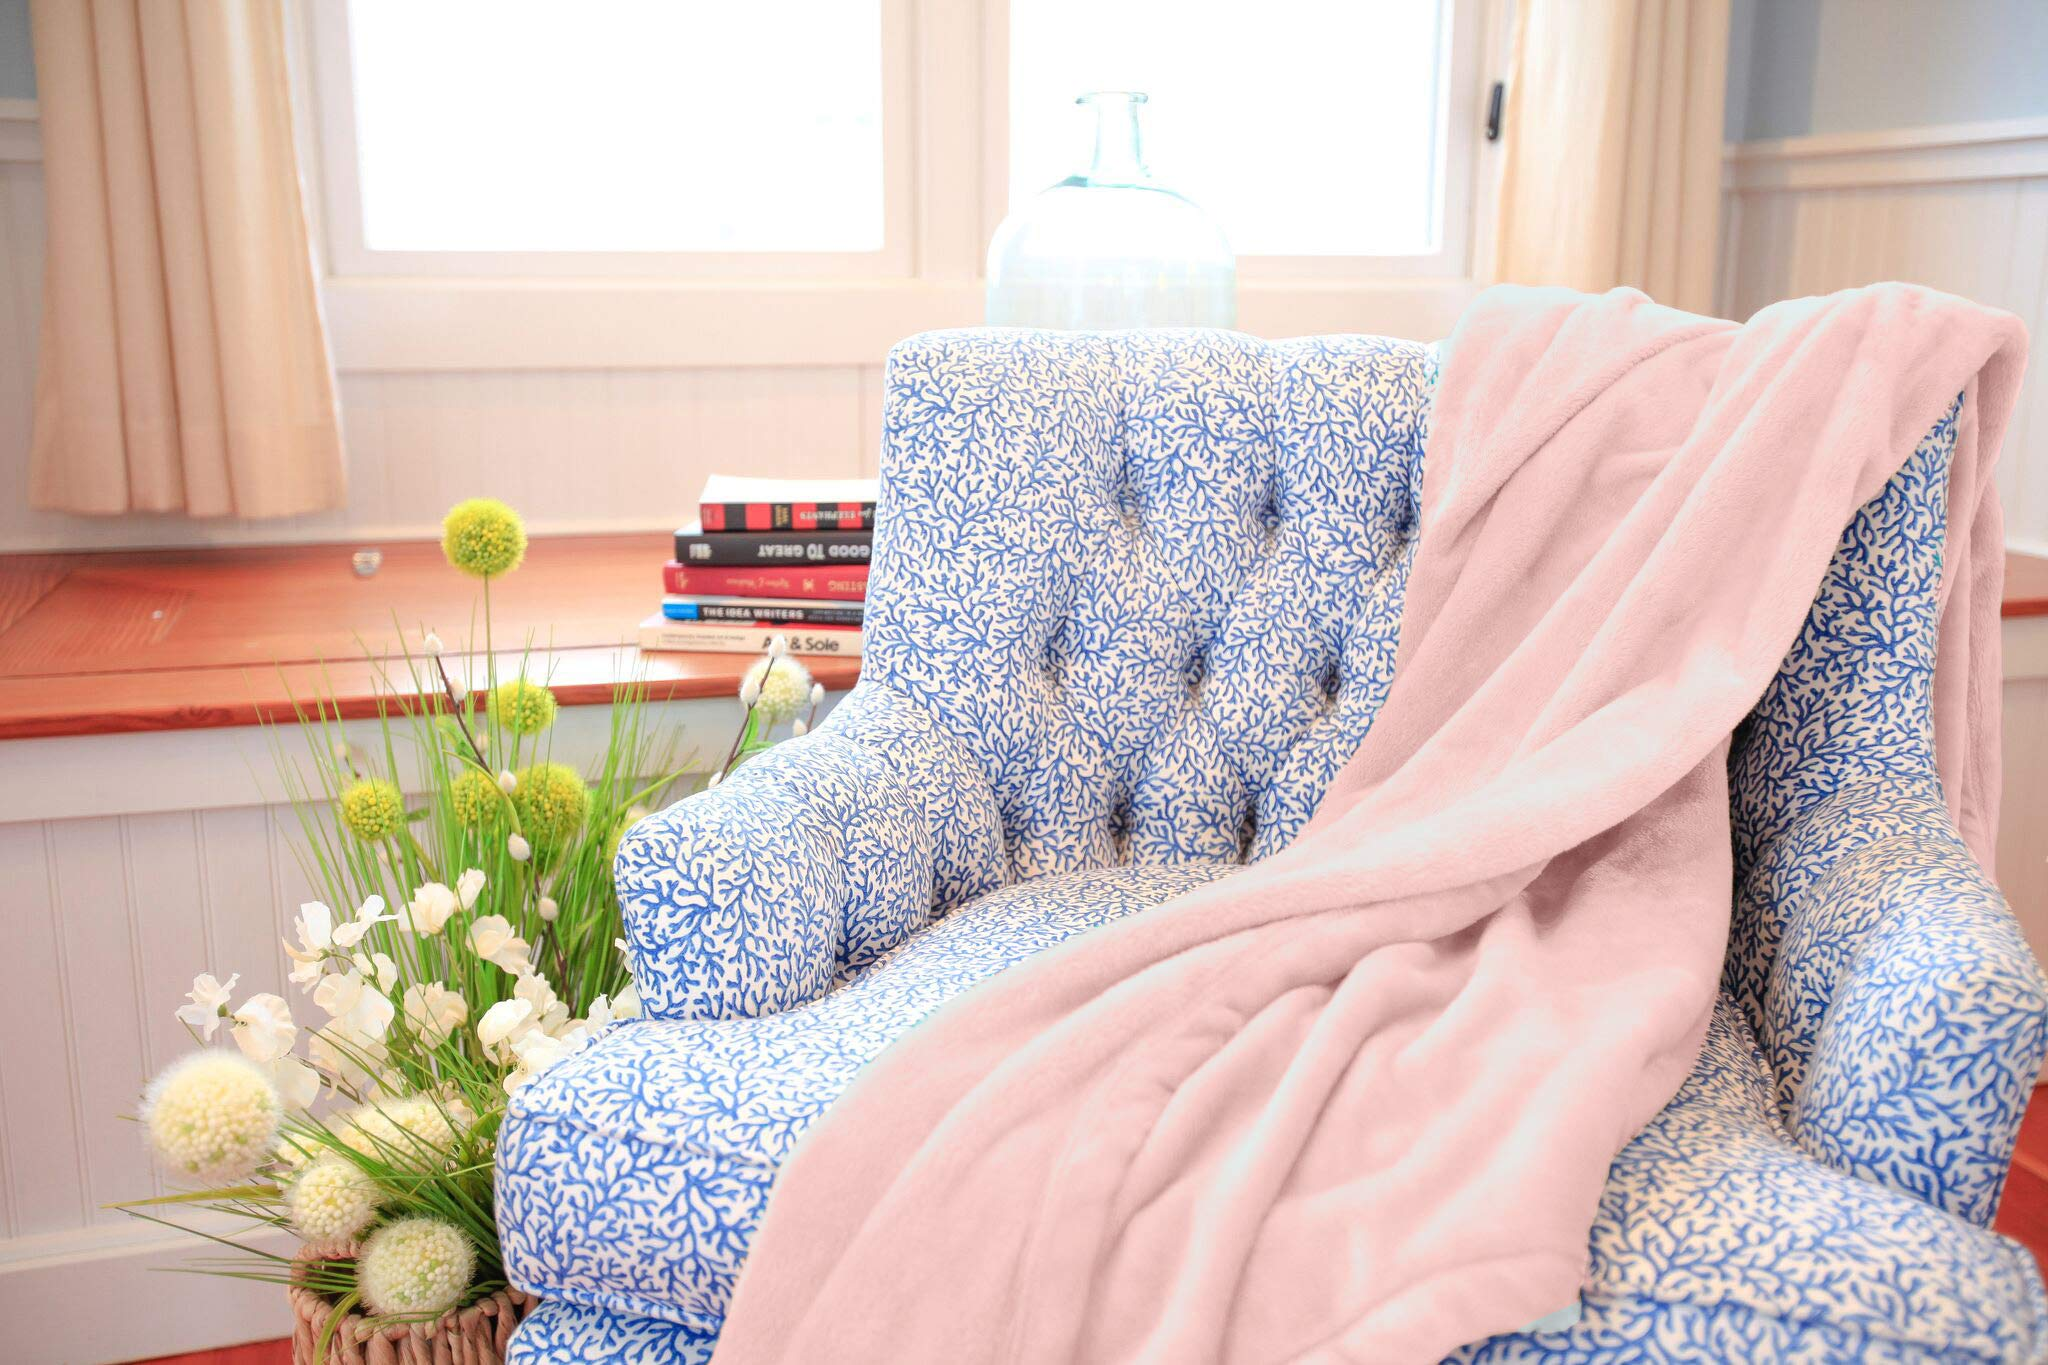 American Blanket Company, Luxurious Luster Loft Fleece Blanket, Soft and Warm Twin Blanket in Pale Pink